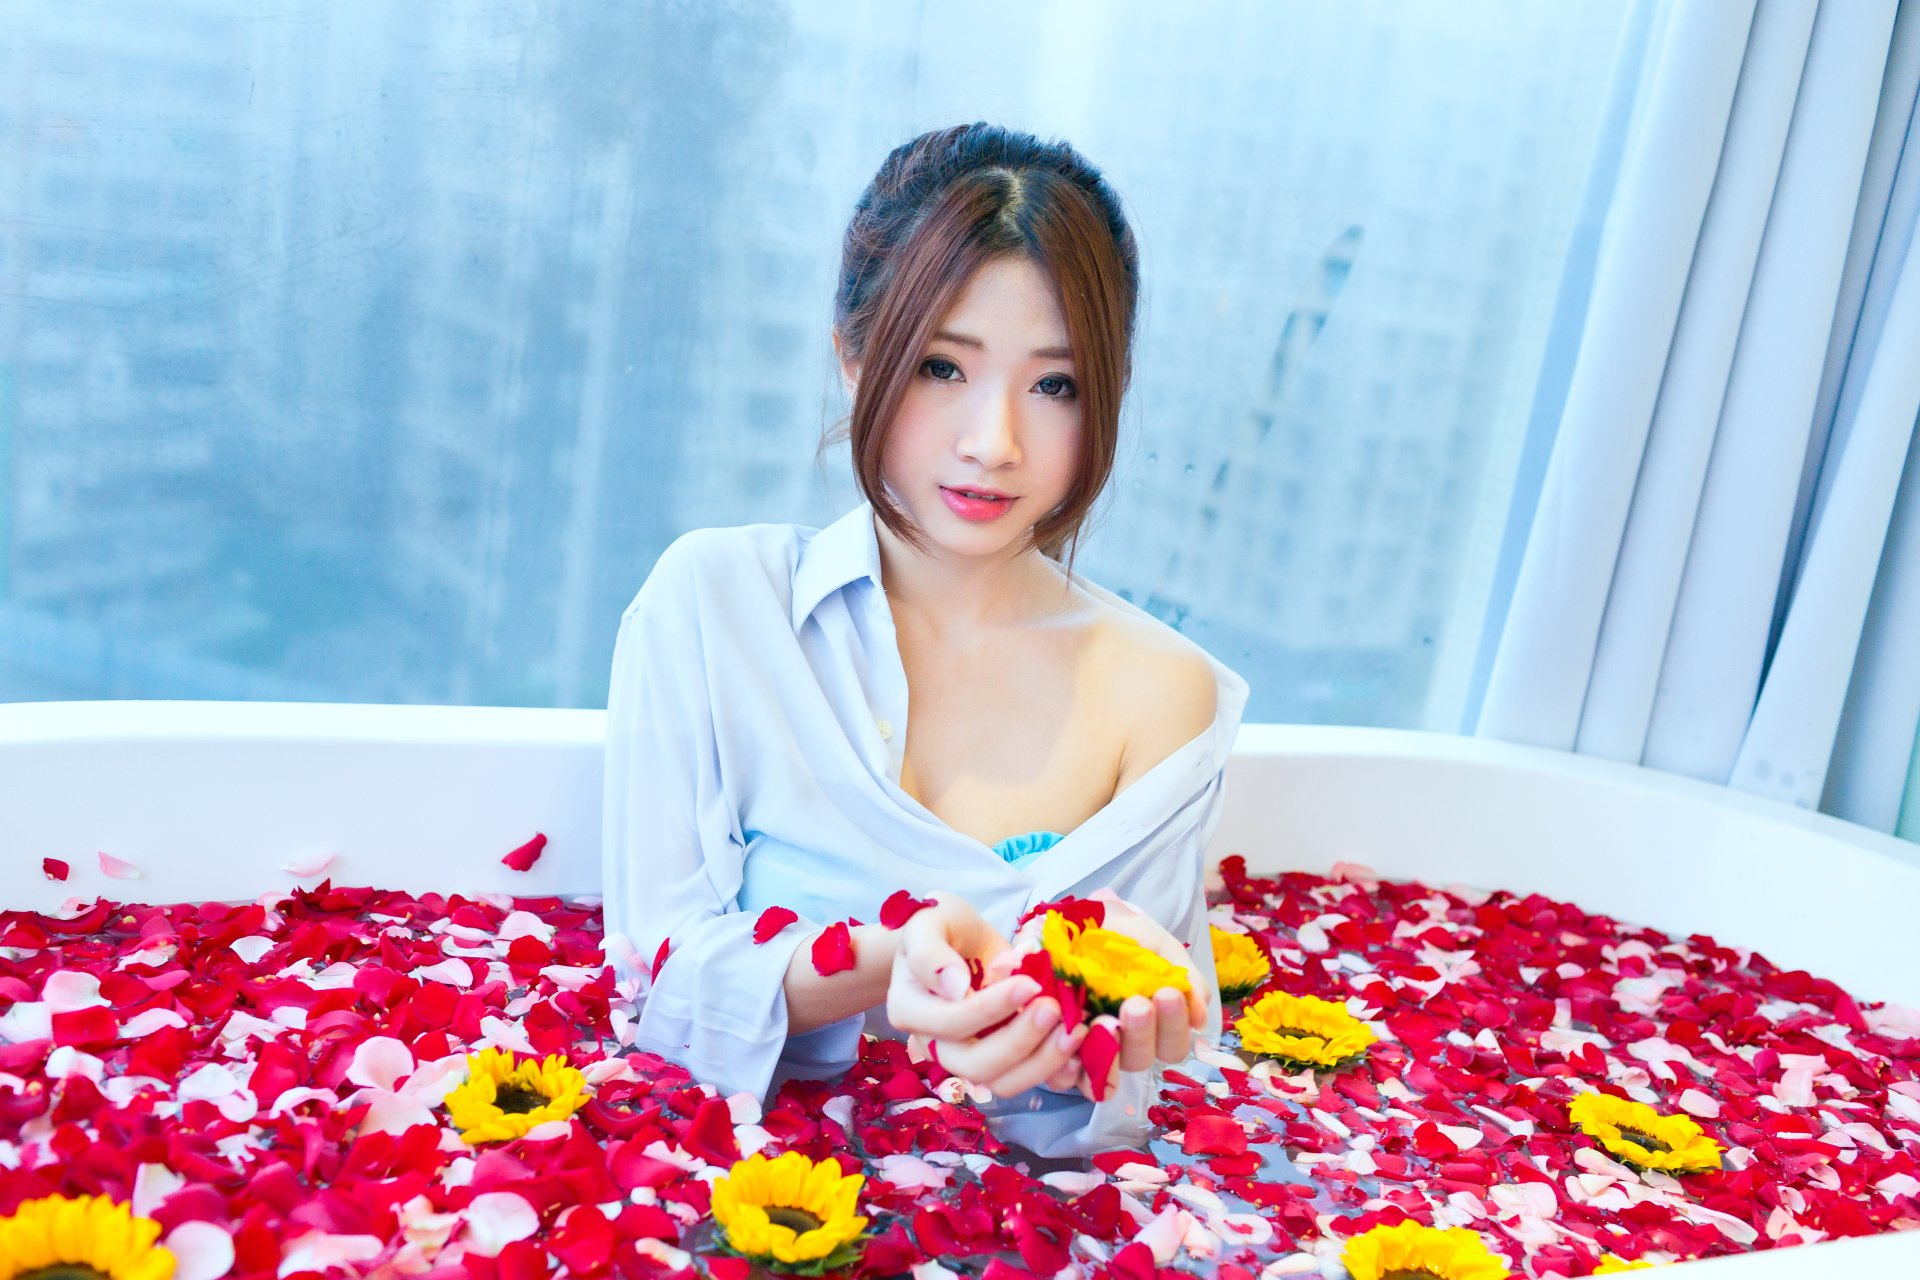 Wallpapers ID:714780